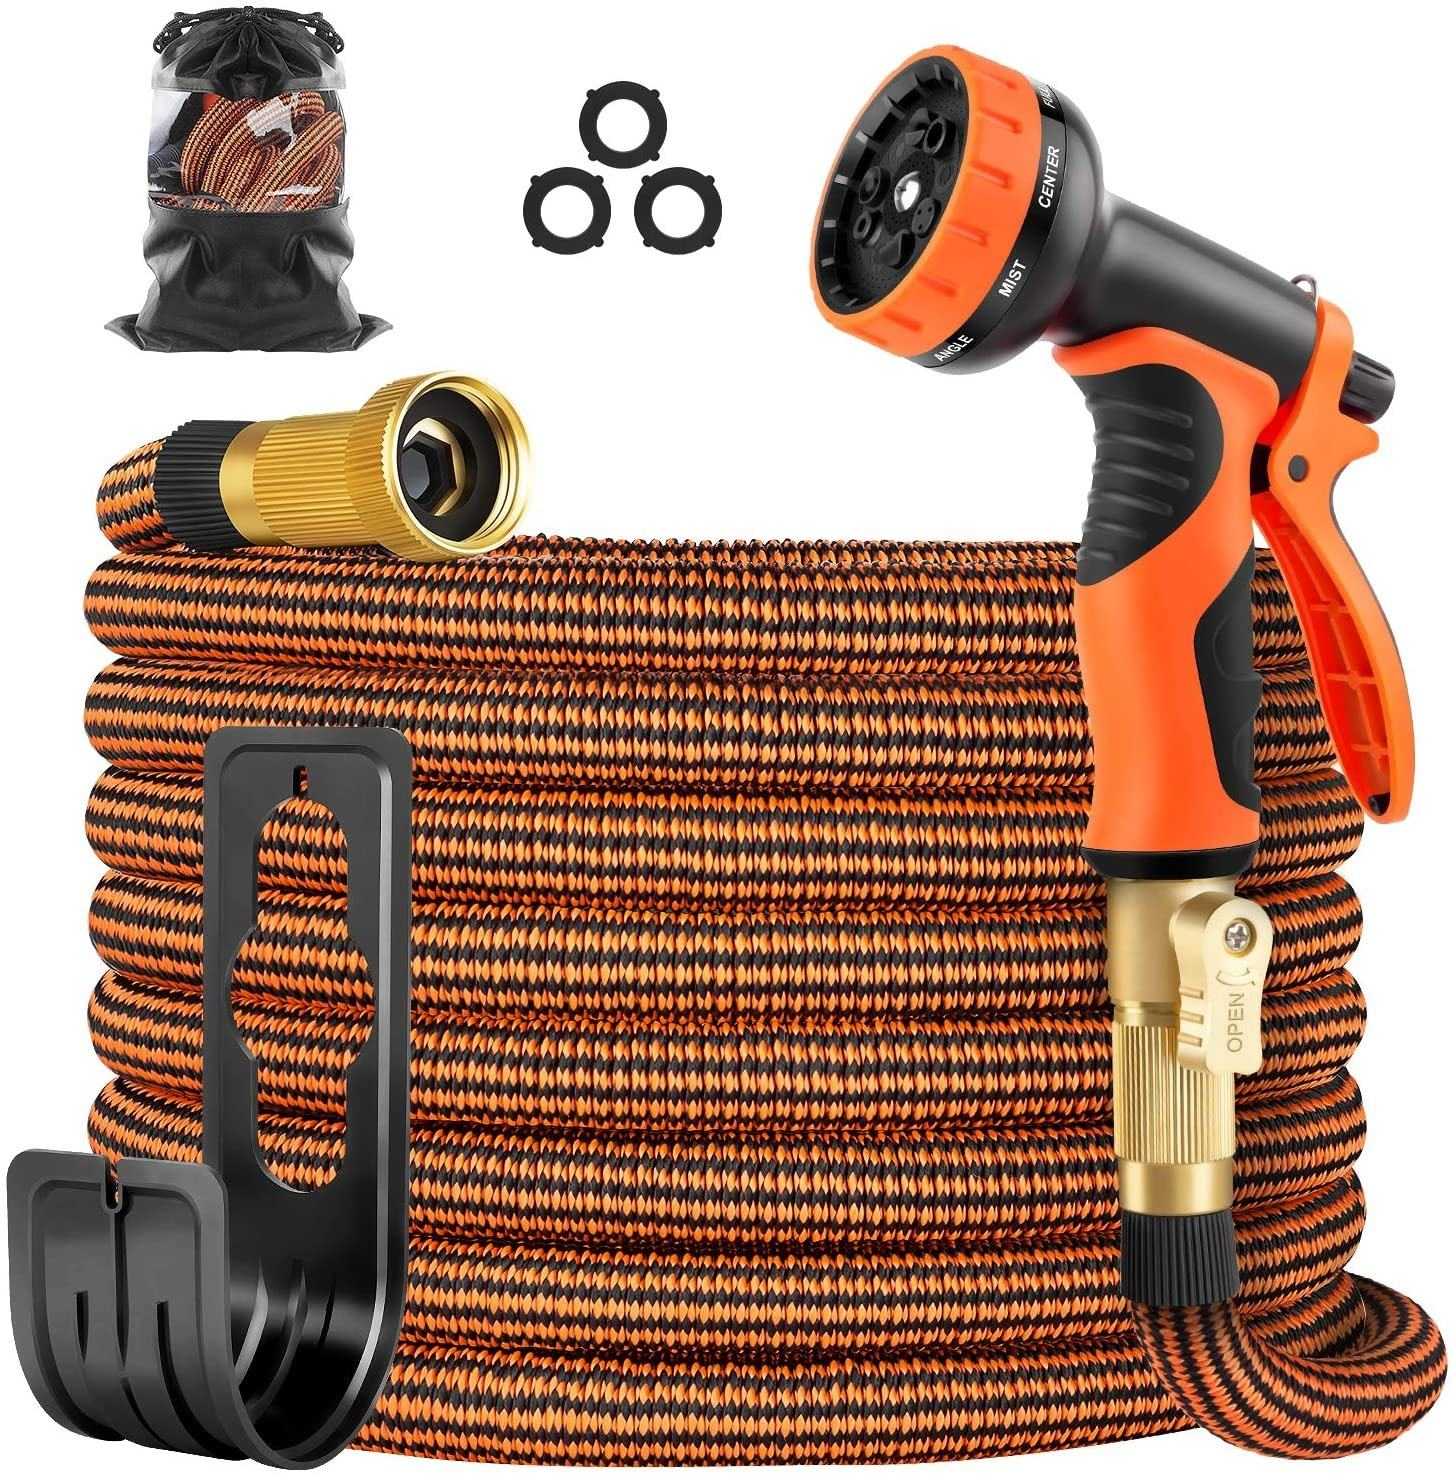 50ft Expanding Garden Hose Lightweight Water Hose with 10 Functions Sprayer